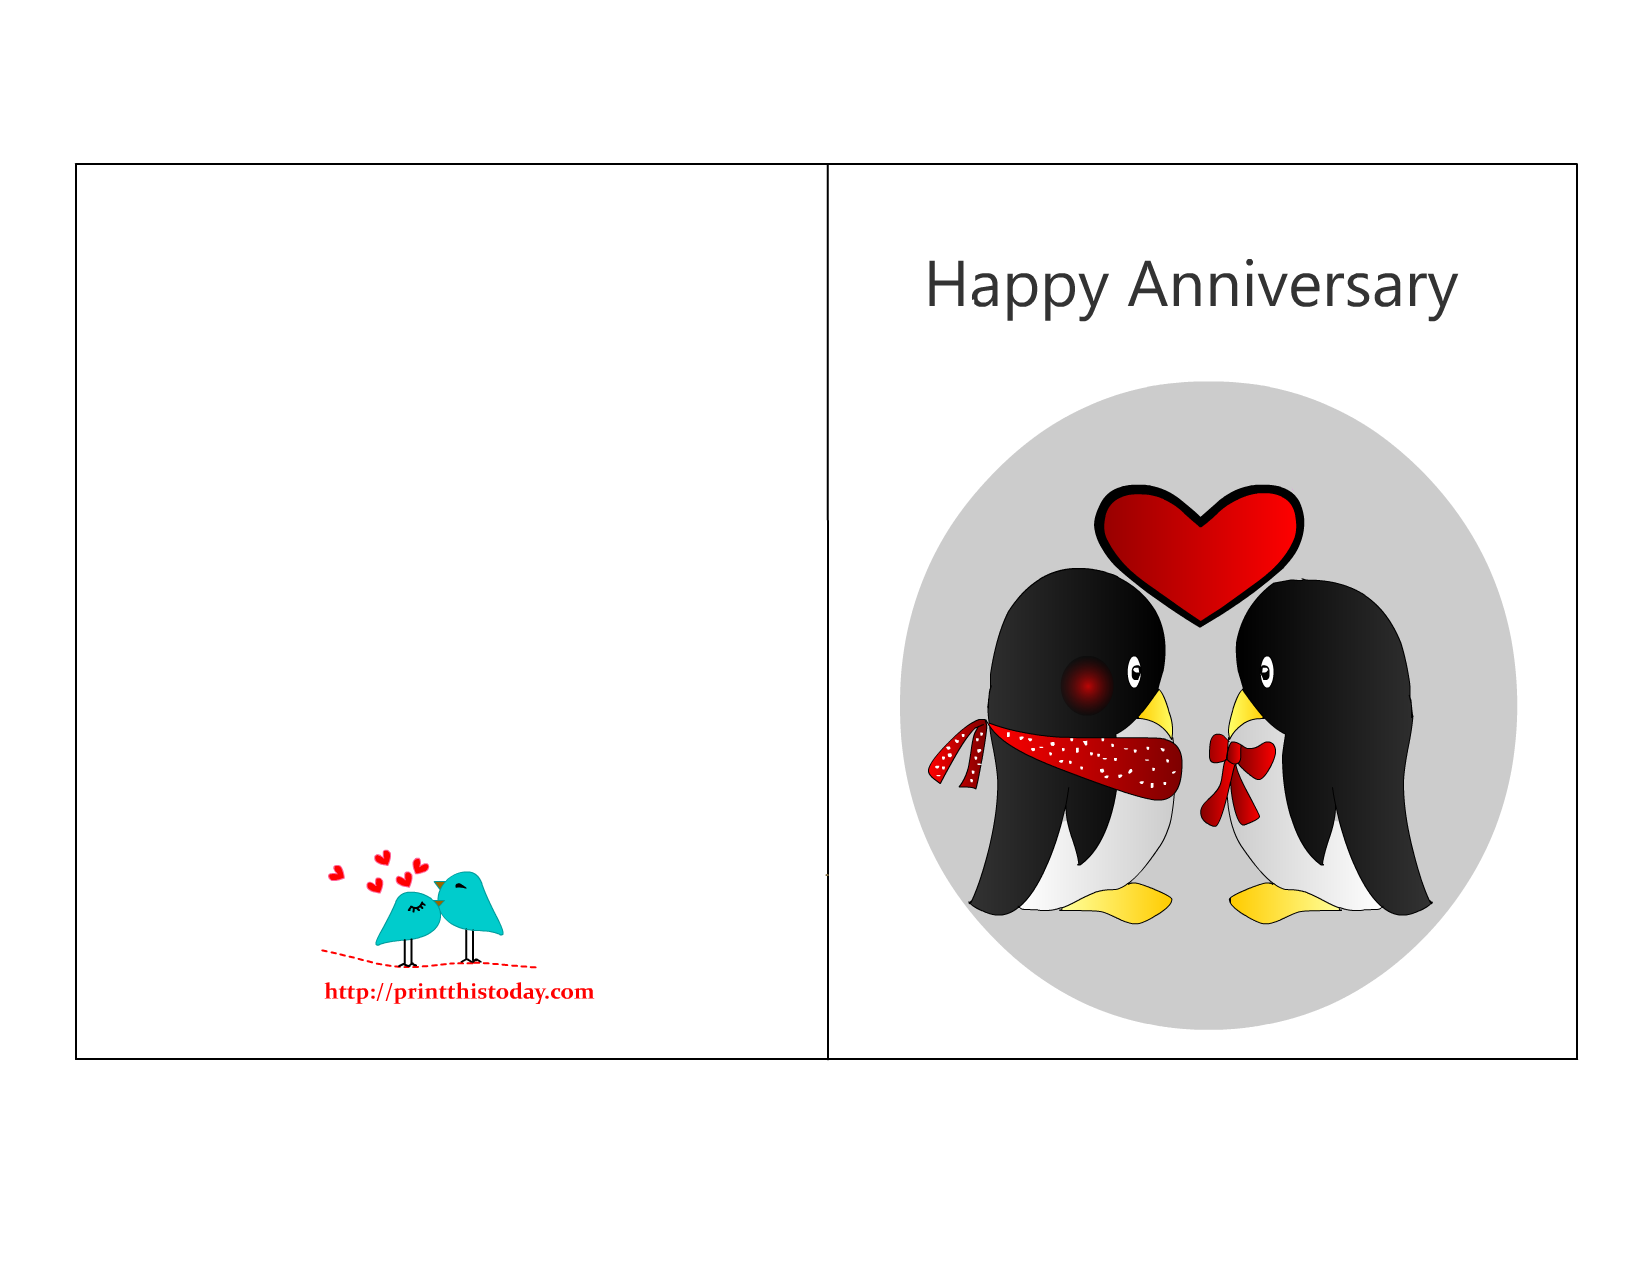 6 Images of Happy Anniversary Cards Printable